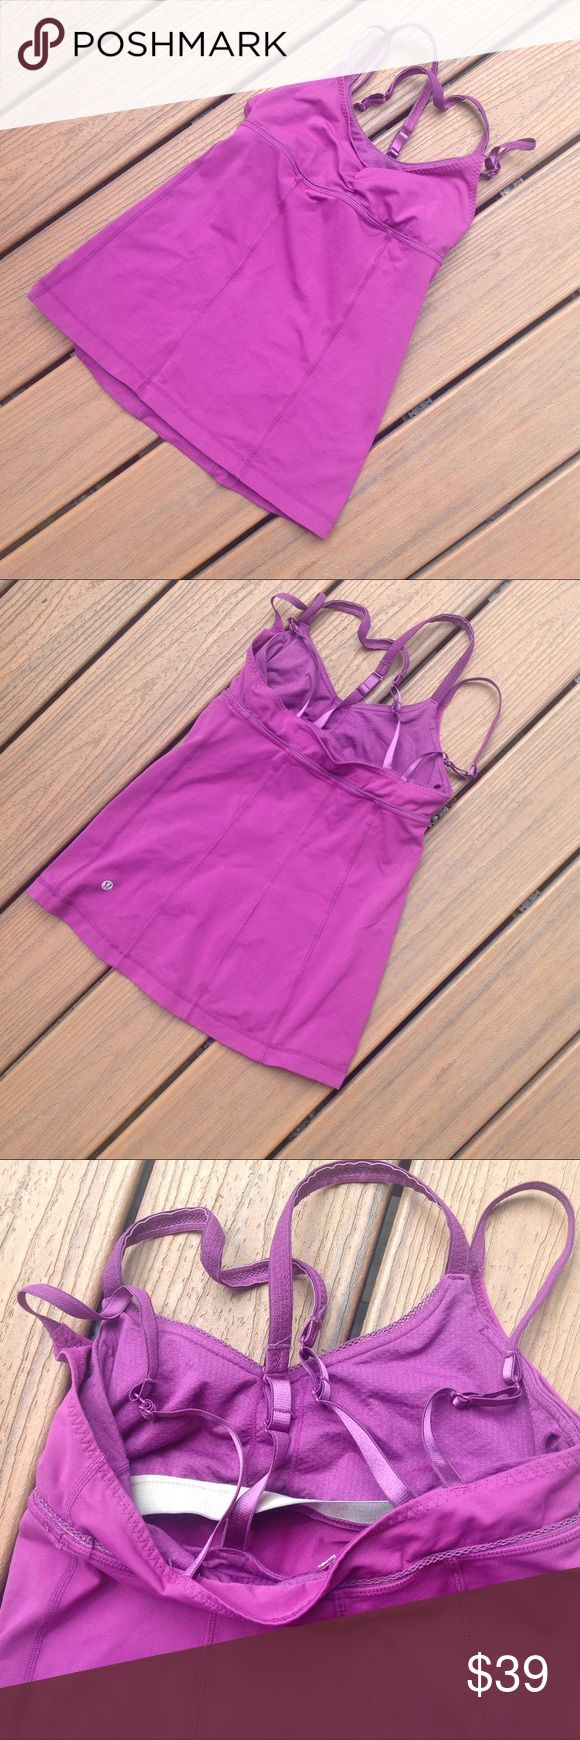 Lululemon Strap Tank Awesome lululemon tank with strappy back.  Has double bra for lots of coverage and minimal bounce.  Purple/pink color.  Minor pilling by Lulu symbol in last picture. lululemon athletica Tops Tank Tops